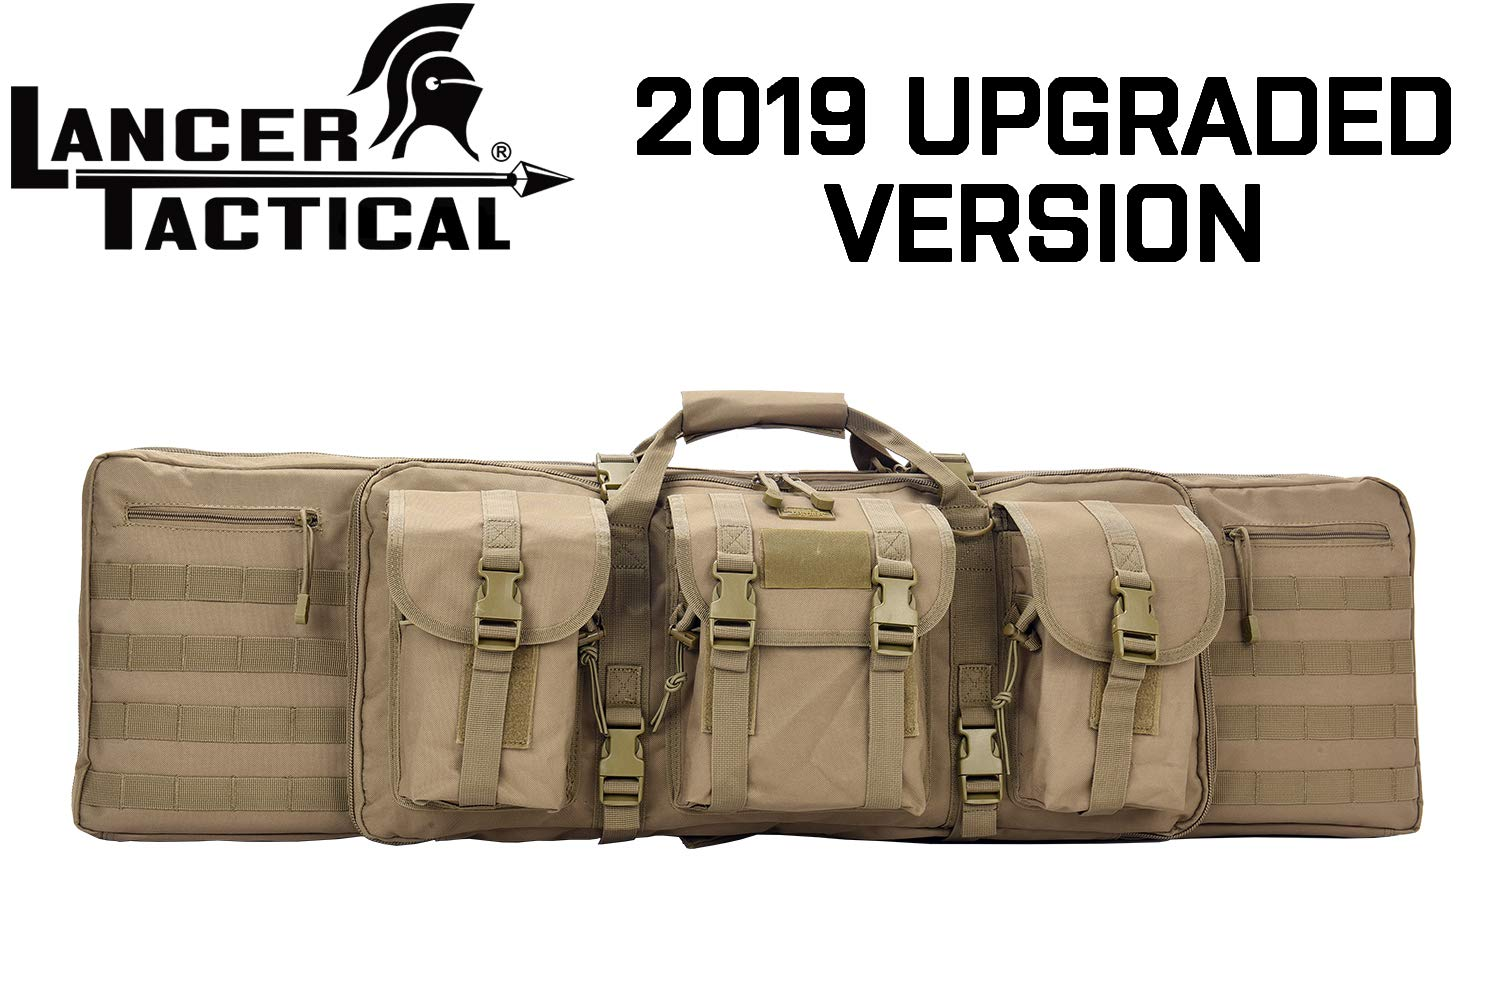 Lancer Tactical Rifle Case 600D Polyester Double Long Rifle Bag Tactical Gun Case Accessory Pouches Secondary Gun Compartment Lockable Compartment Inner Storage Backpack Straps for Hunting Shooting by Lancer Tactical